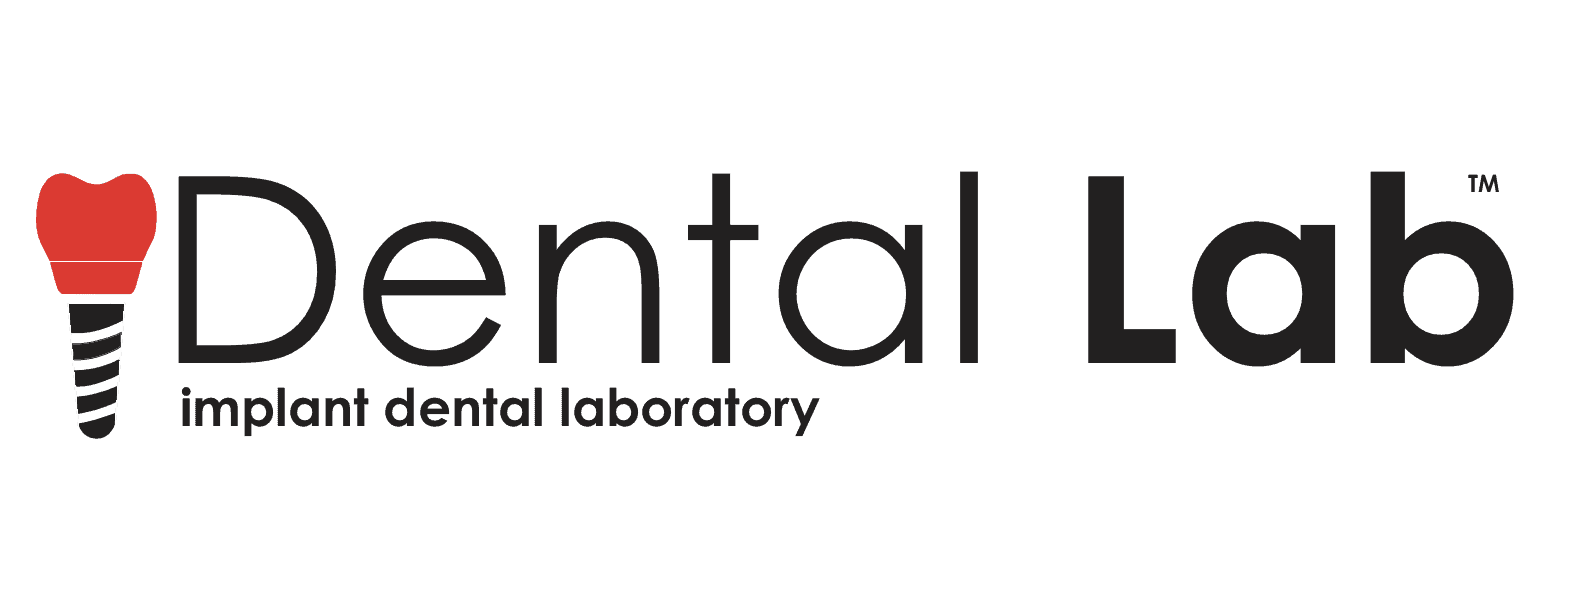 iDental Lab Cosmetic and Implant Dental Laboratory